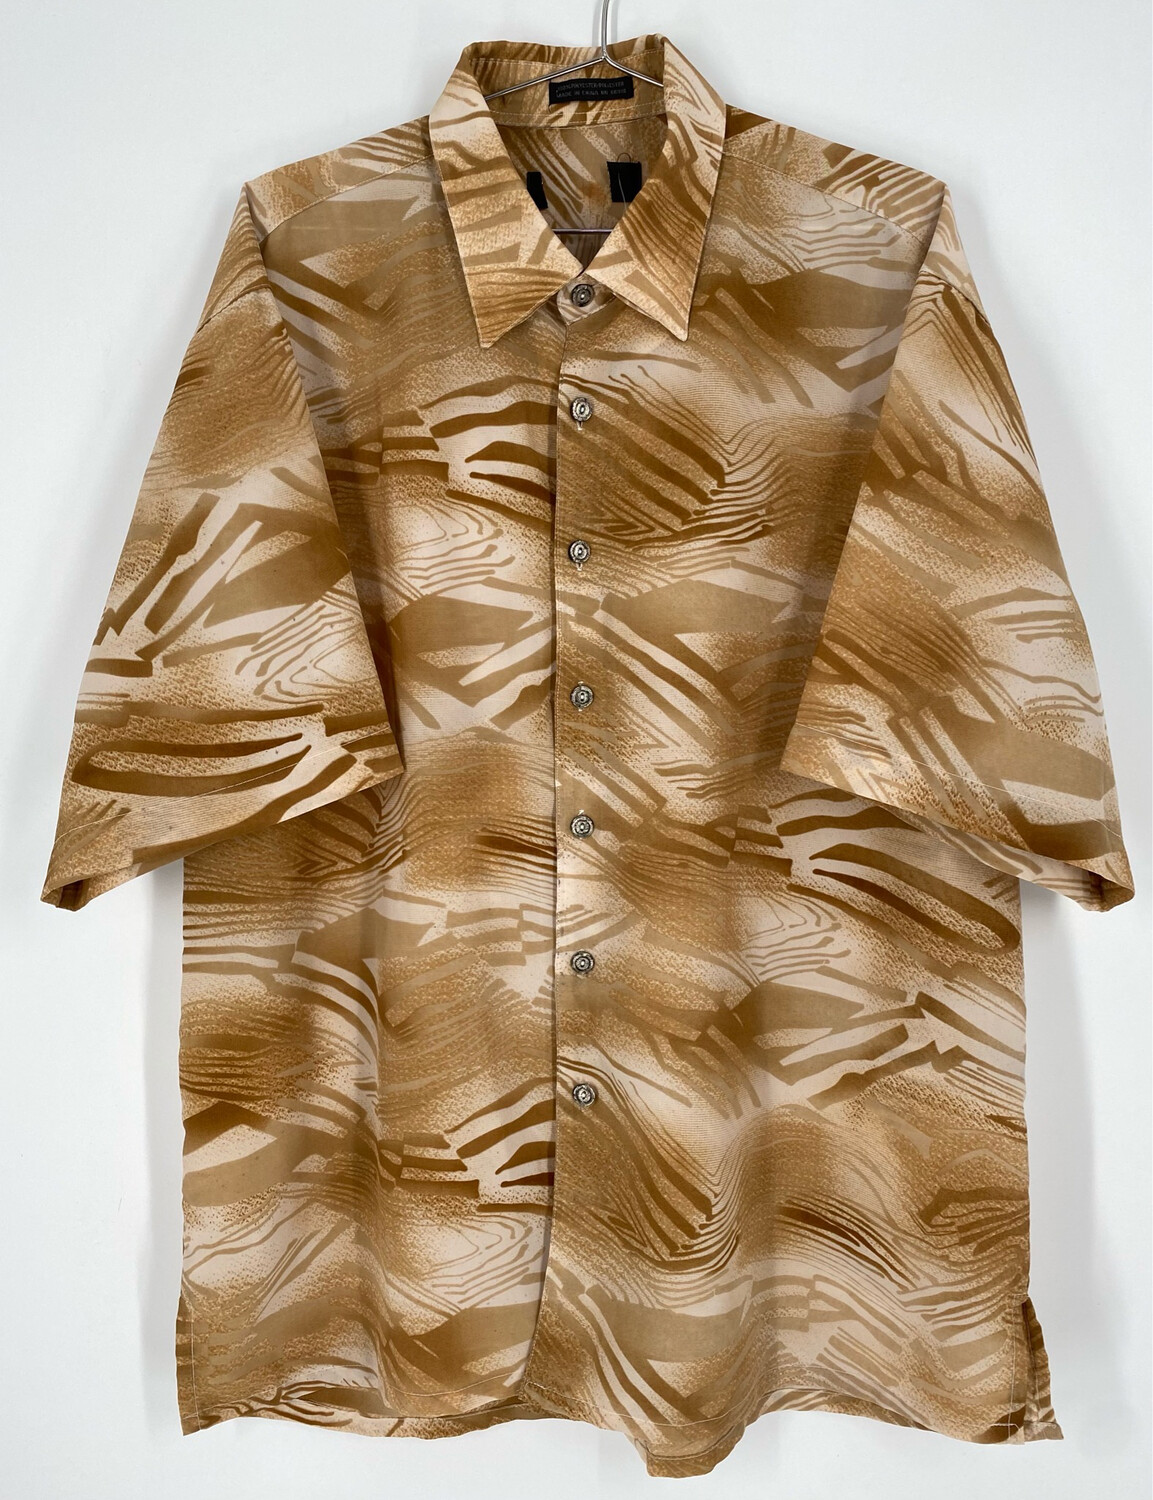 Sandy Retro Abstract Animal Print Short Sleeve Button Up Size M